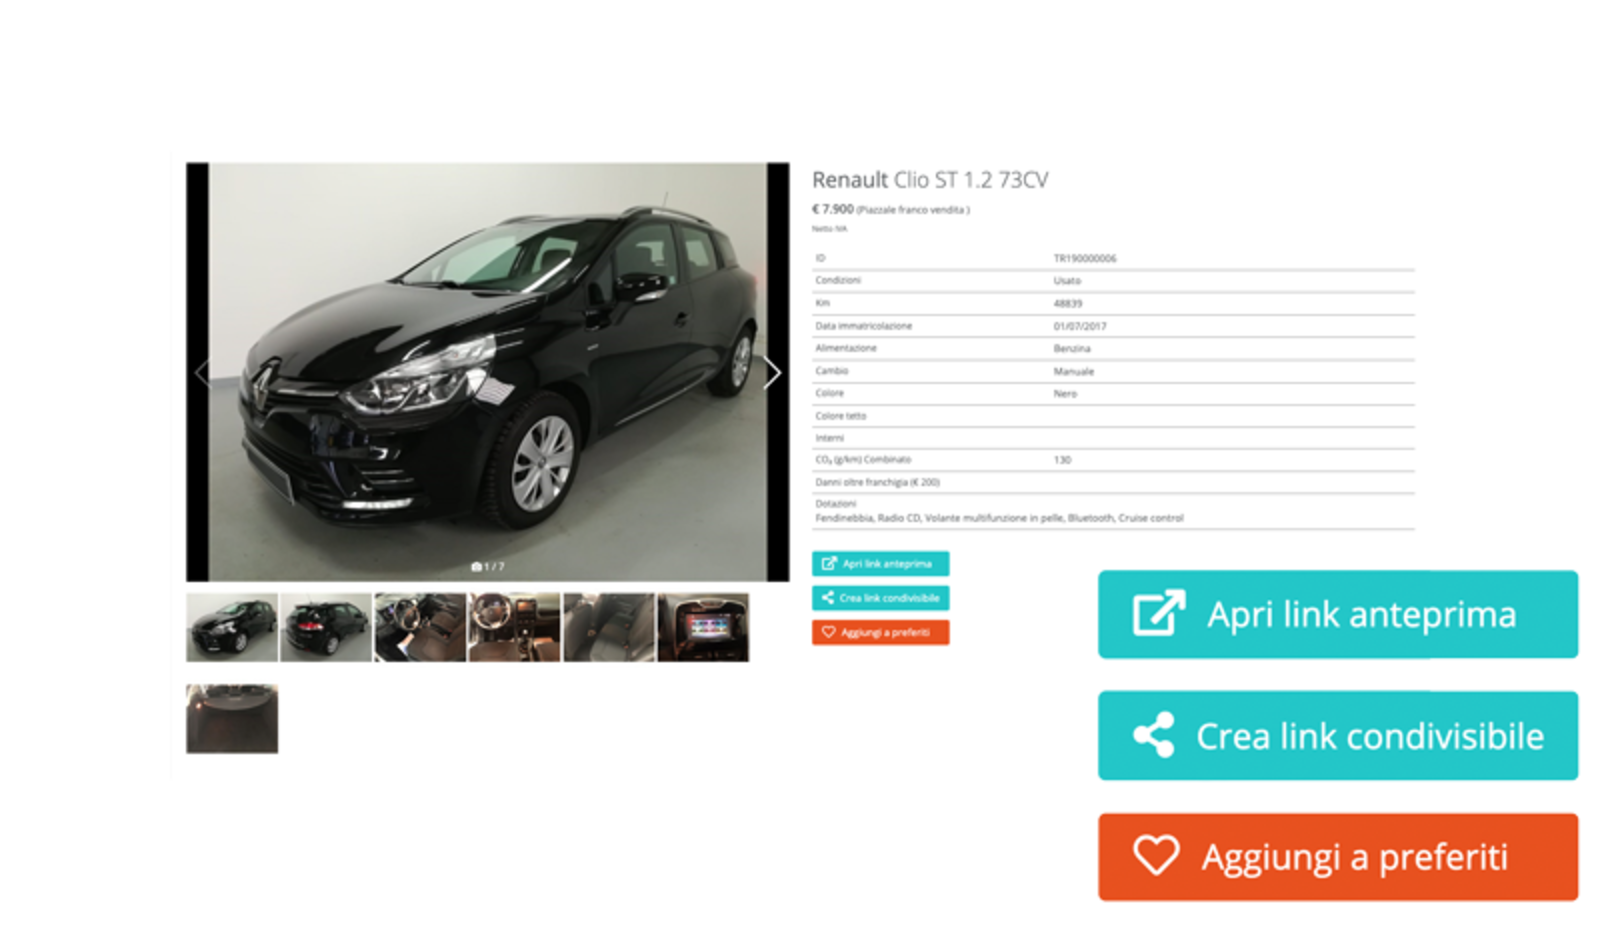 Screen of a car card with photos, details and options for the car